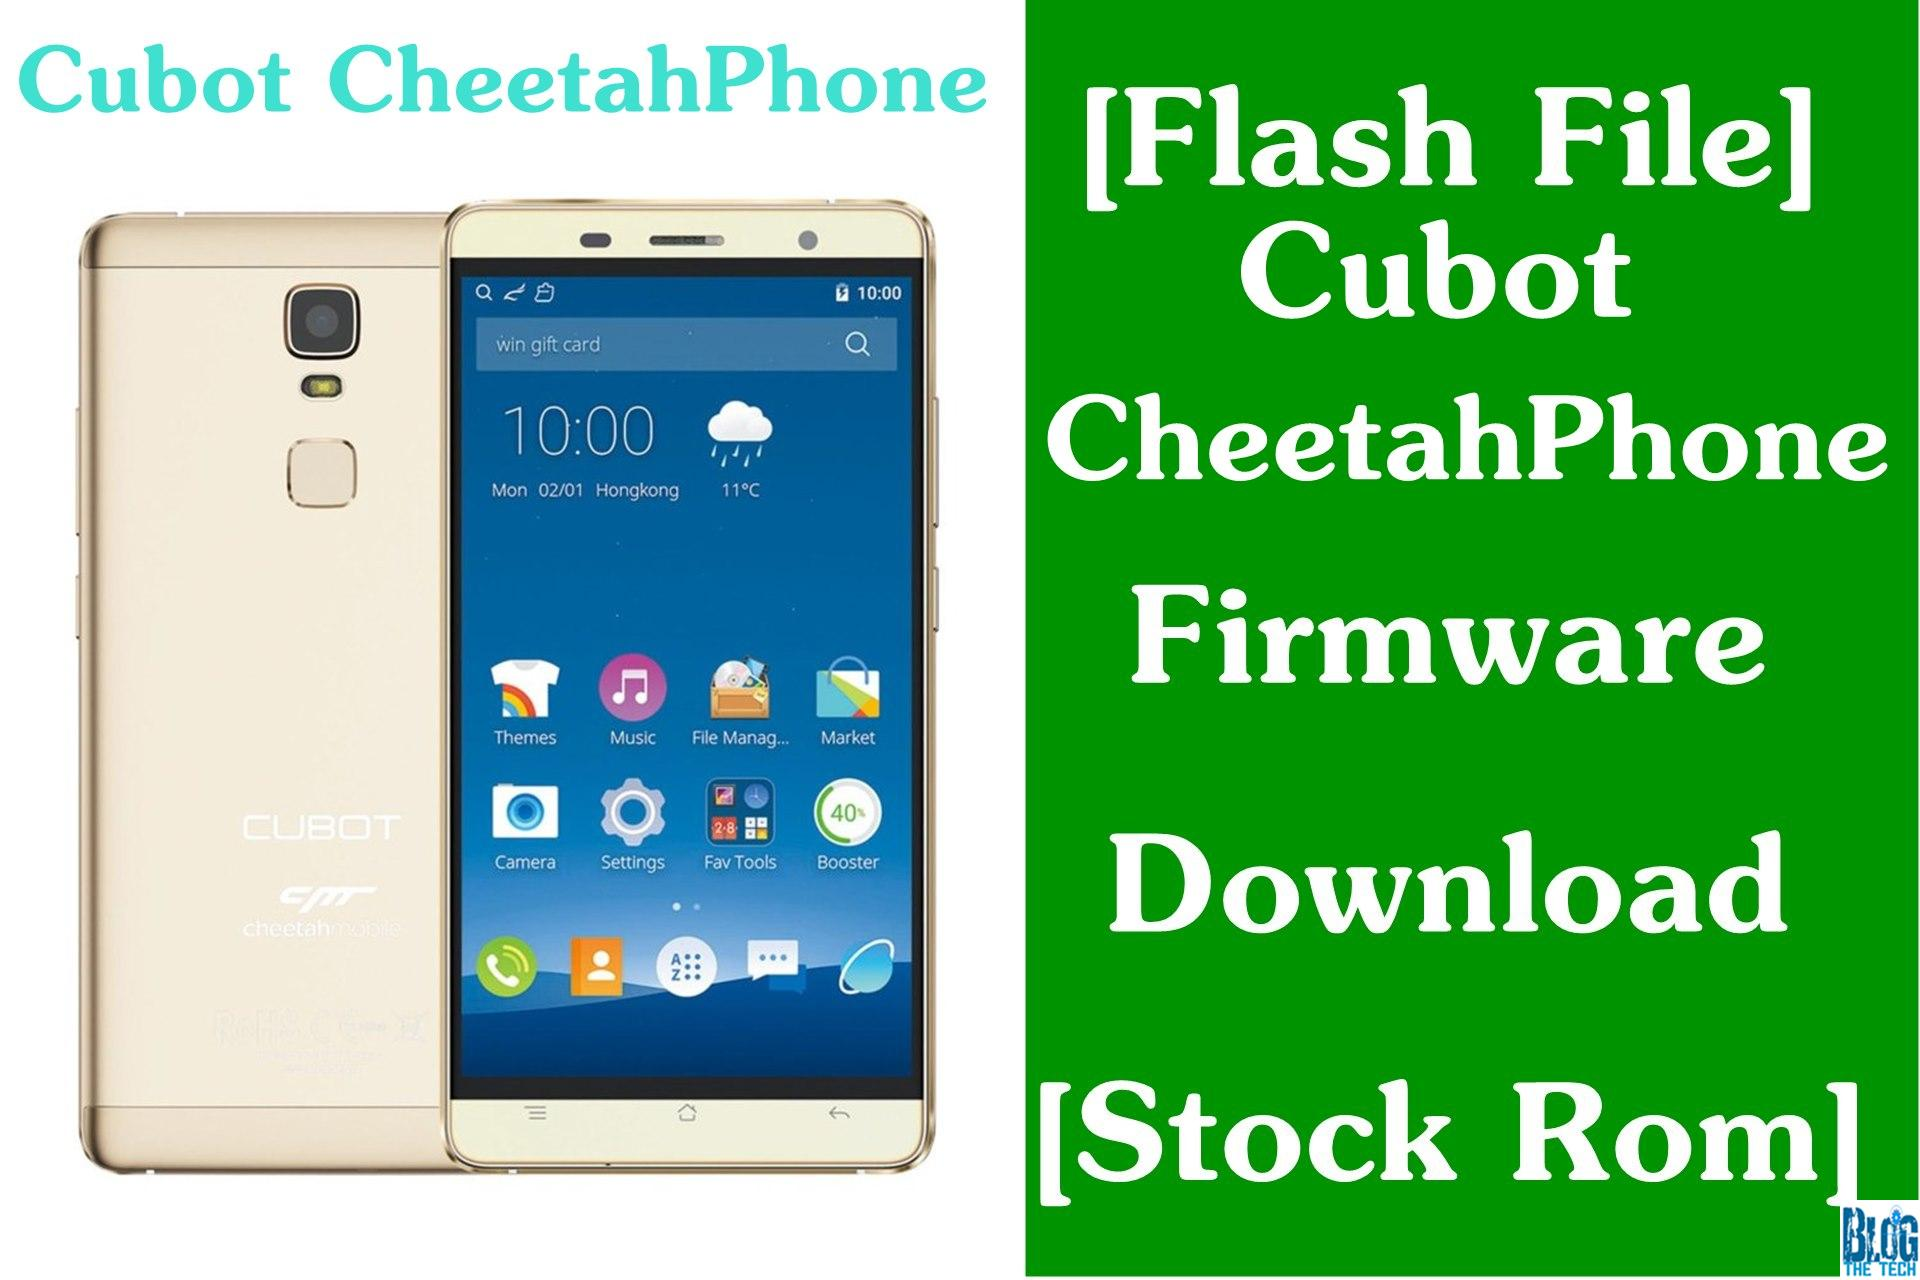 flash tablette accent vinny oleo vegetal info file cubot cheetahphone firmware stock rom tablet deck furniture set wood and metal night table with drawers big kitchen clocks